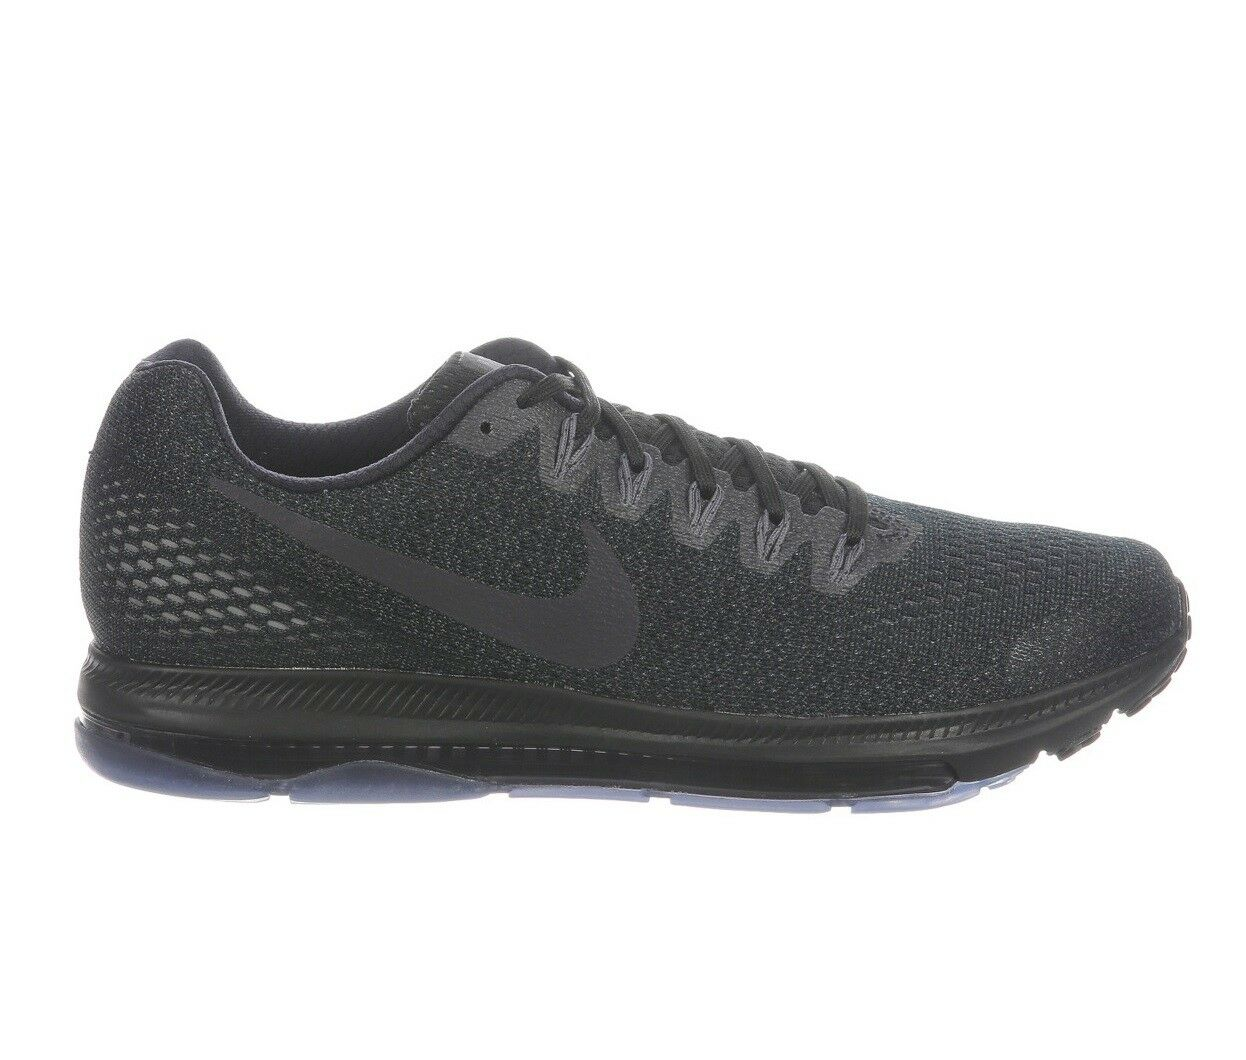 Nike negro Zoom todo Low hombre 878670-011 aura gris negro Nike running zapatos Talla 10 7c602b